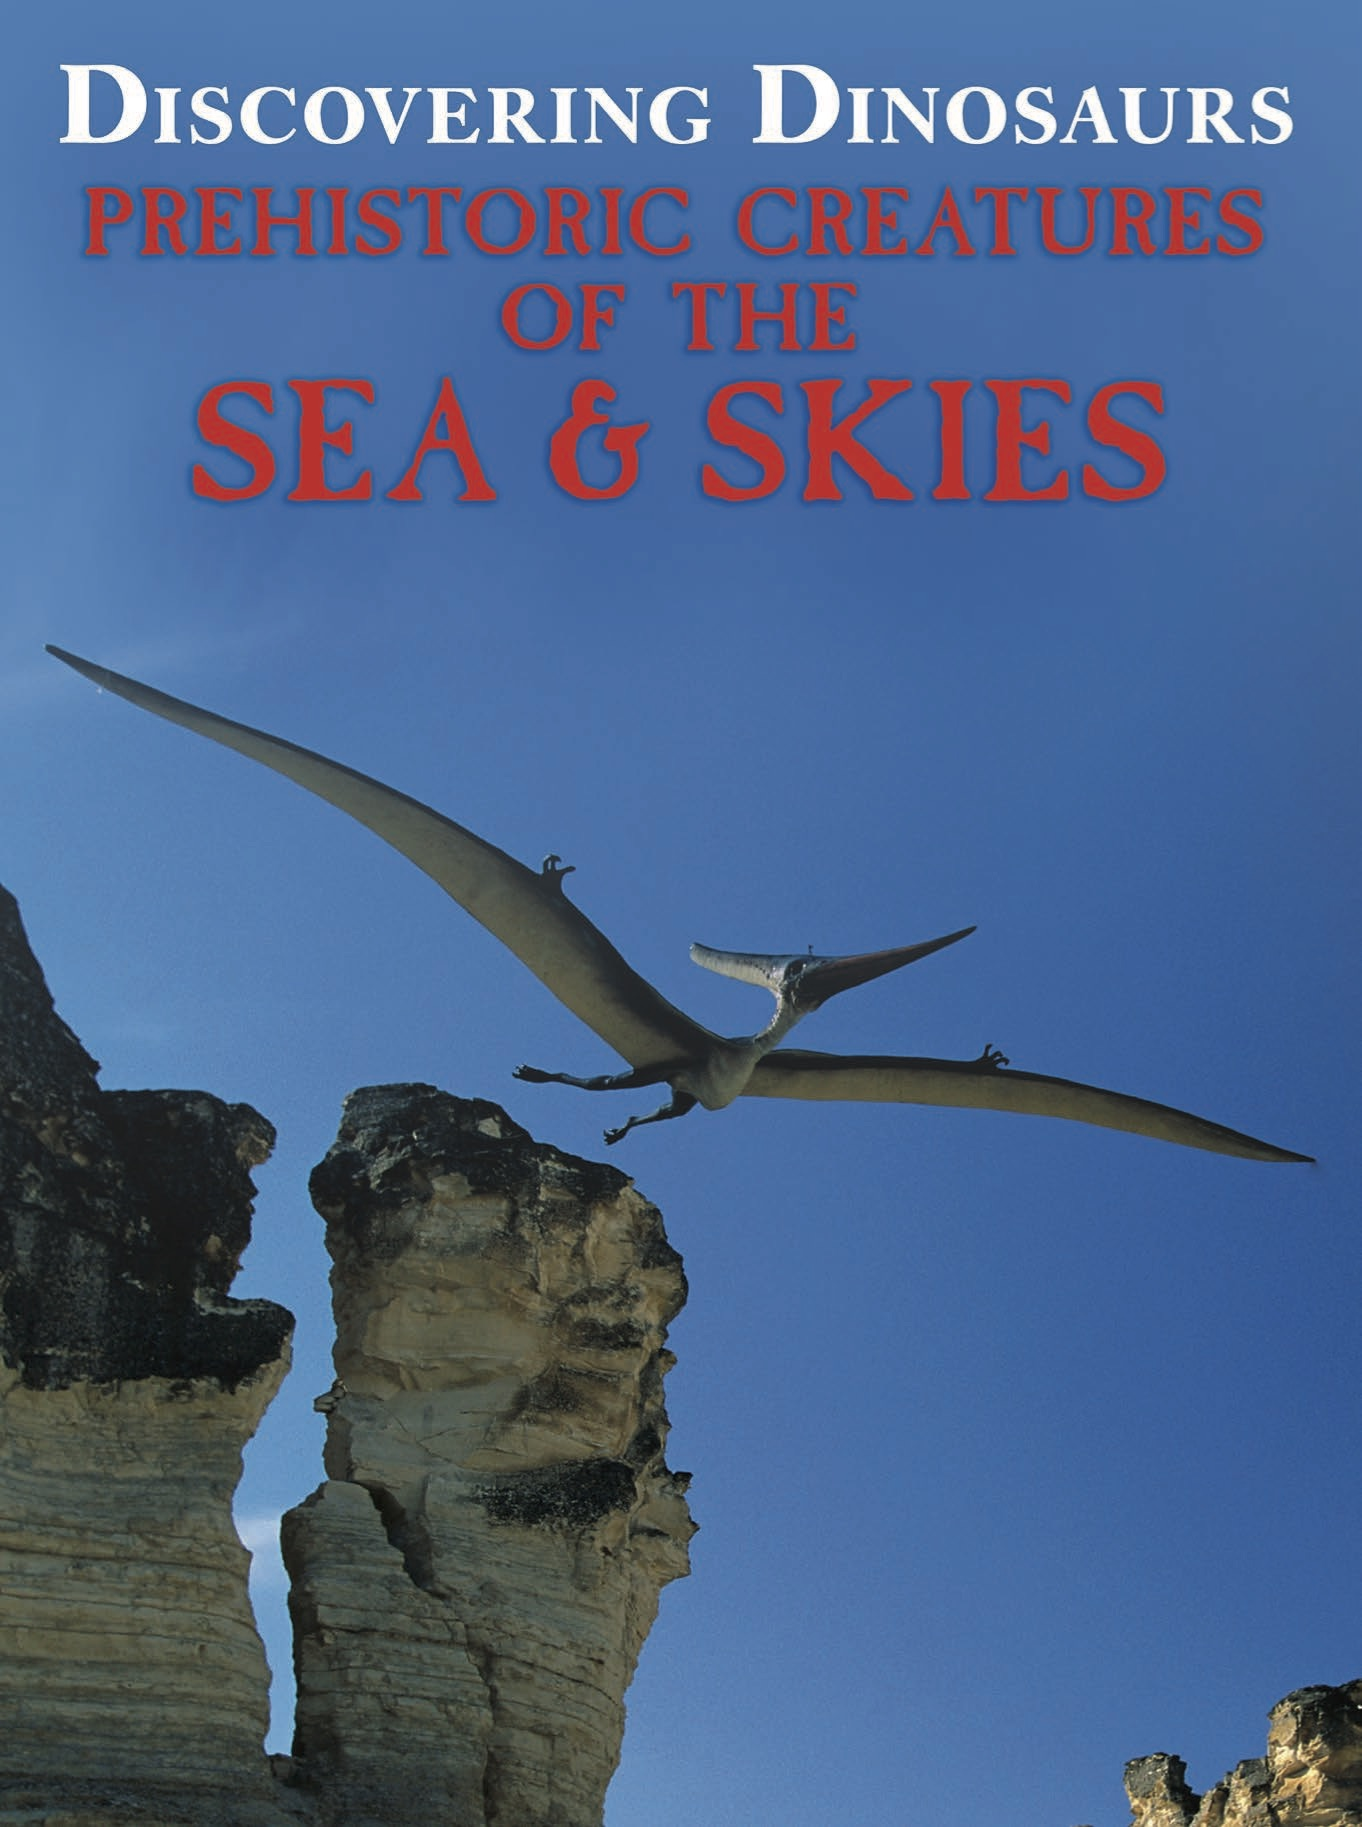 Discovering Dinosaurs: Prehistoric Creatures of the Sea and Skies